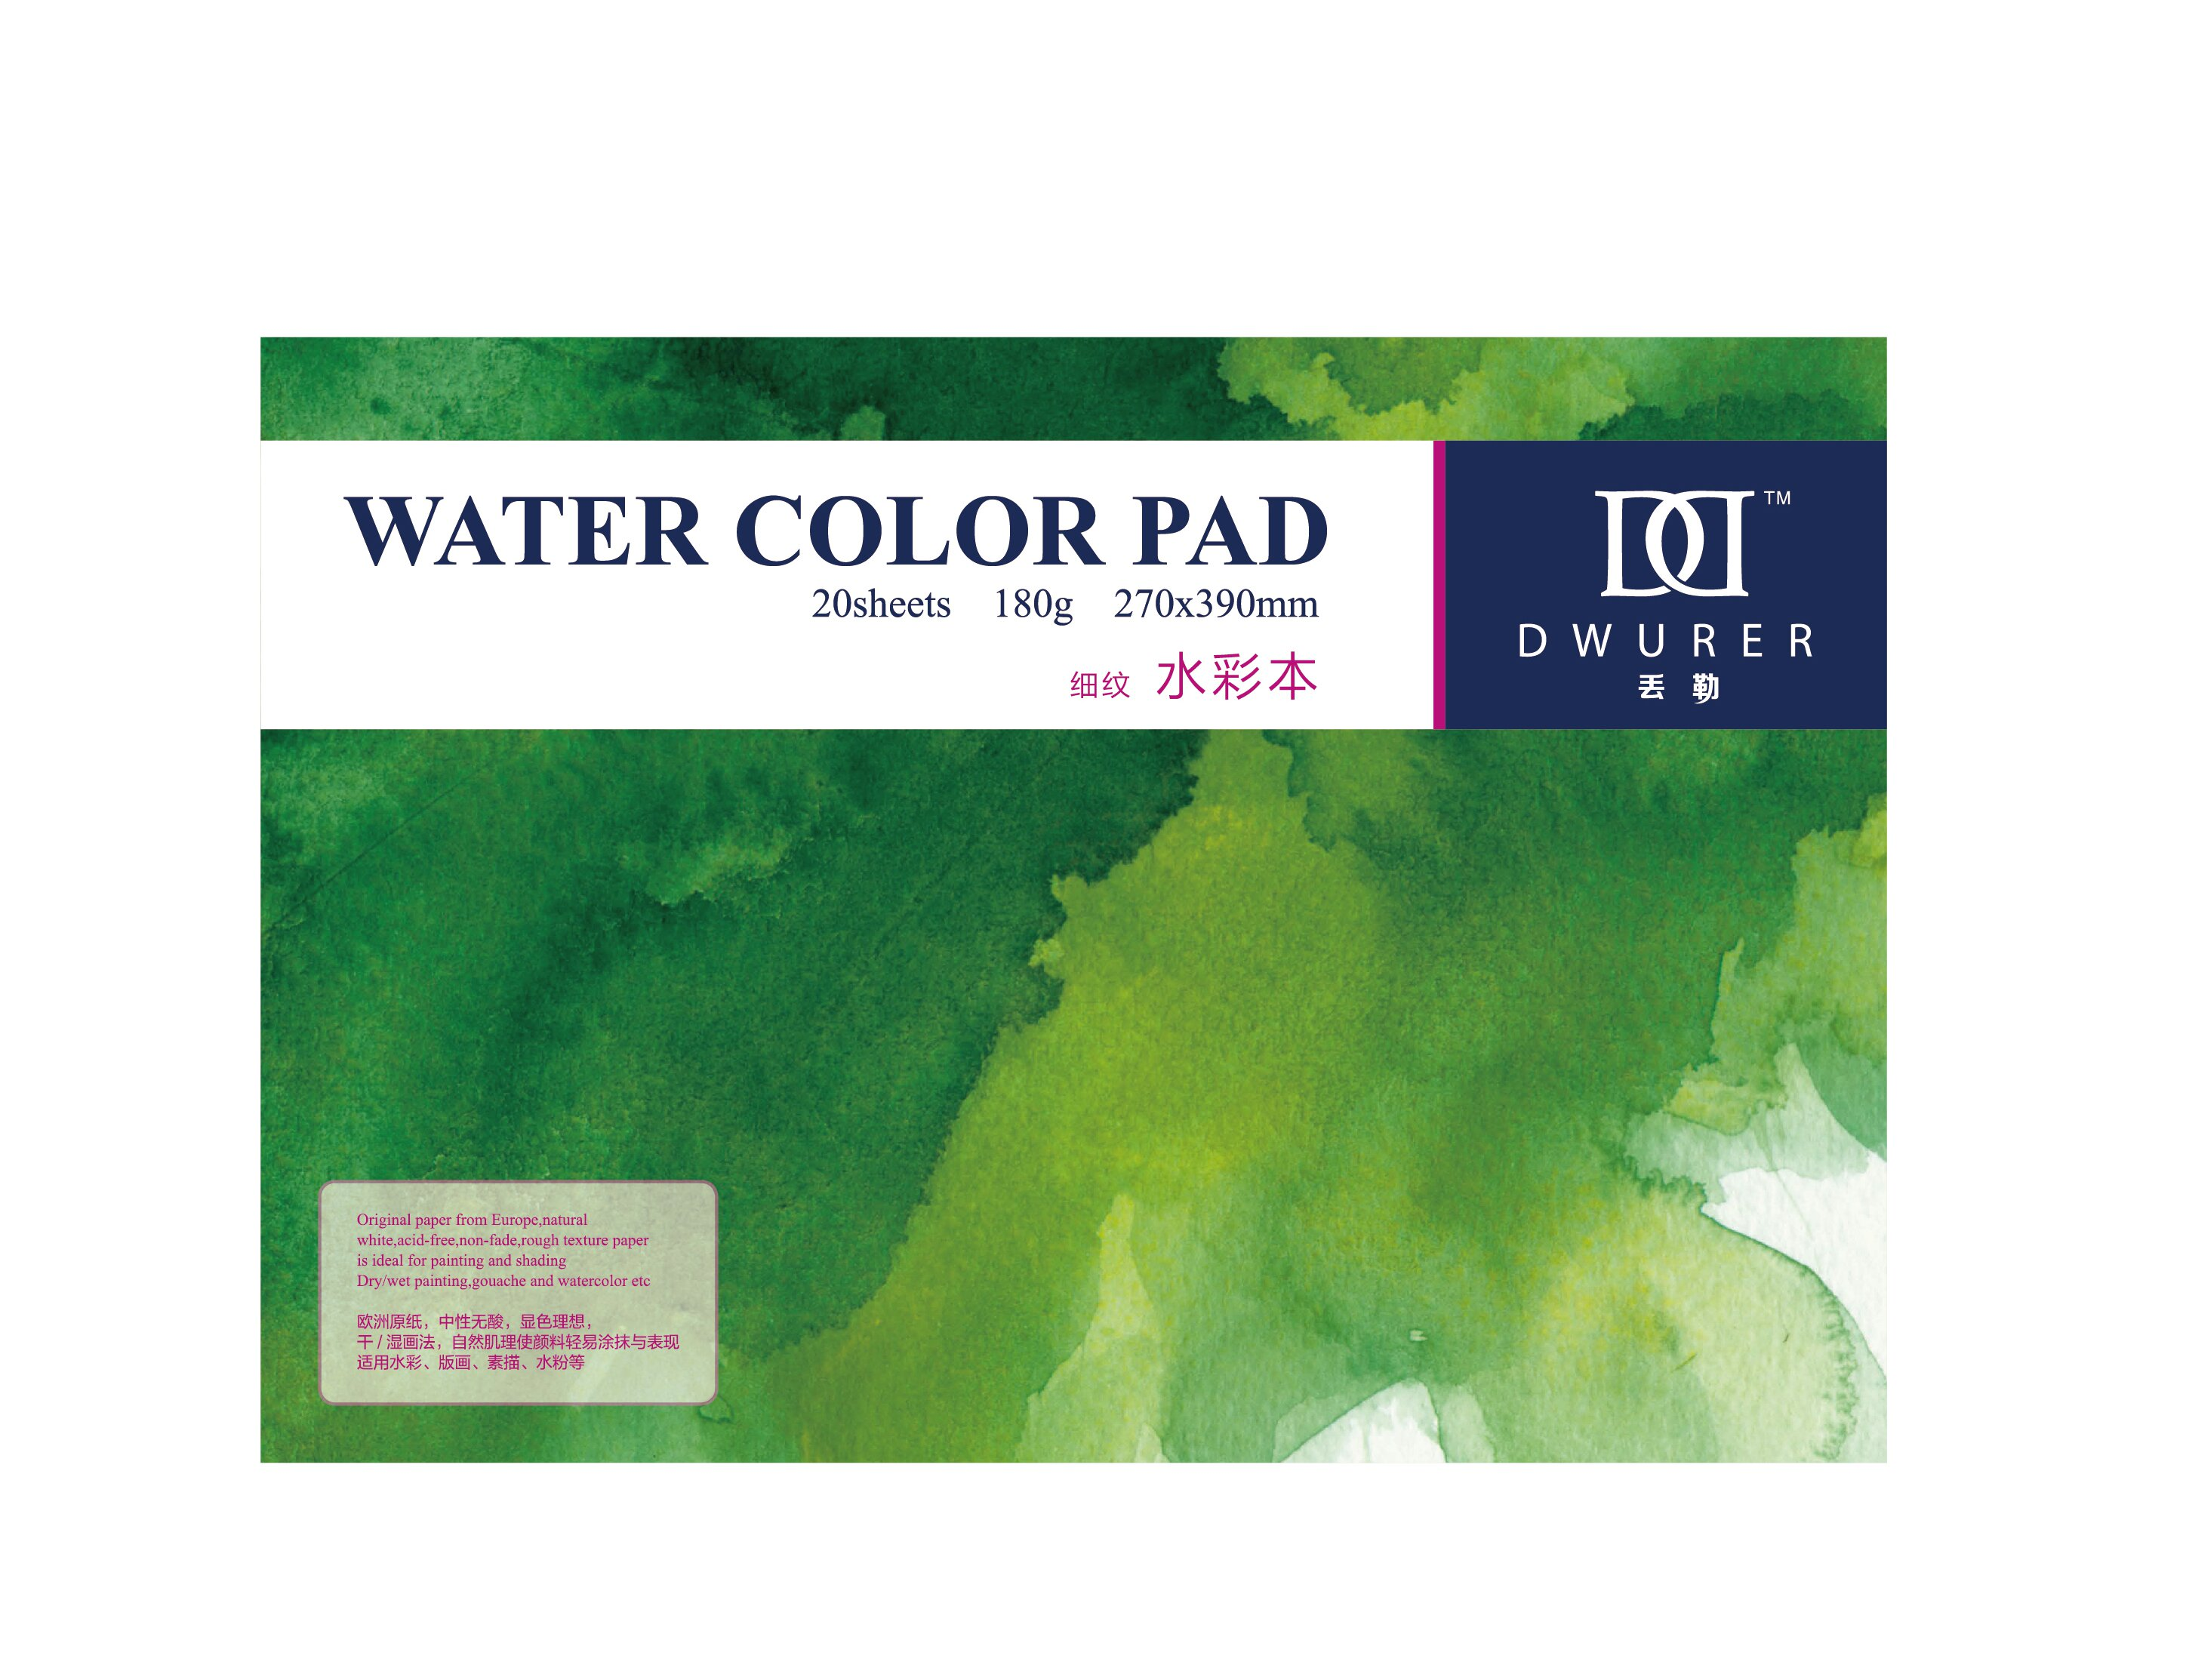 Альбом для акварели DWURER WATERCOLOR PAD 180г/кв.м 270х390мм 20л склейка по 399.00 руб от Potentate